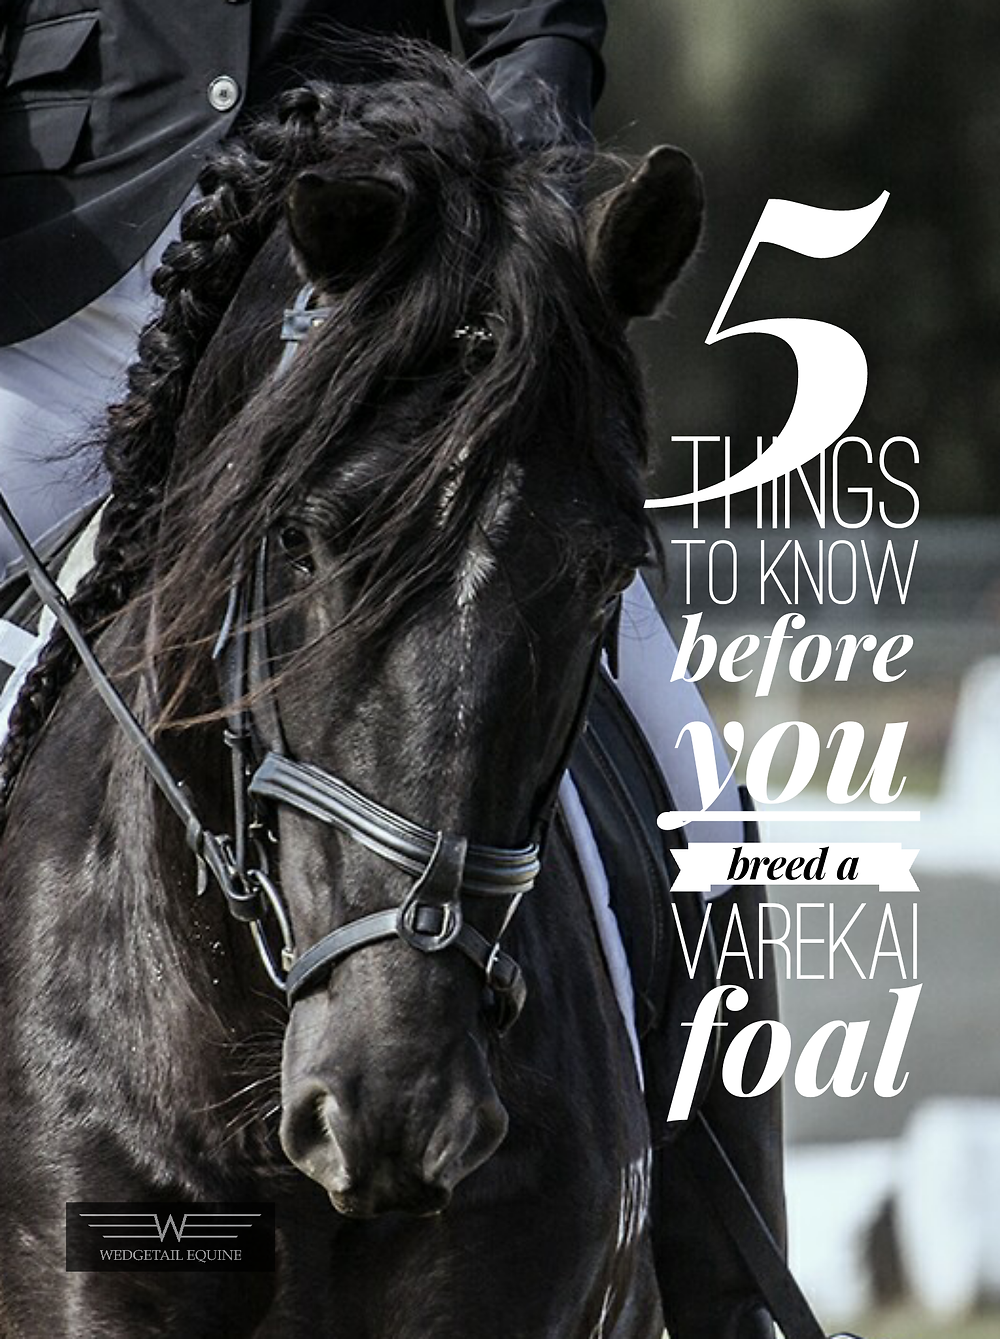 5 things to know before you breed a Varekai foal